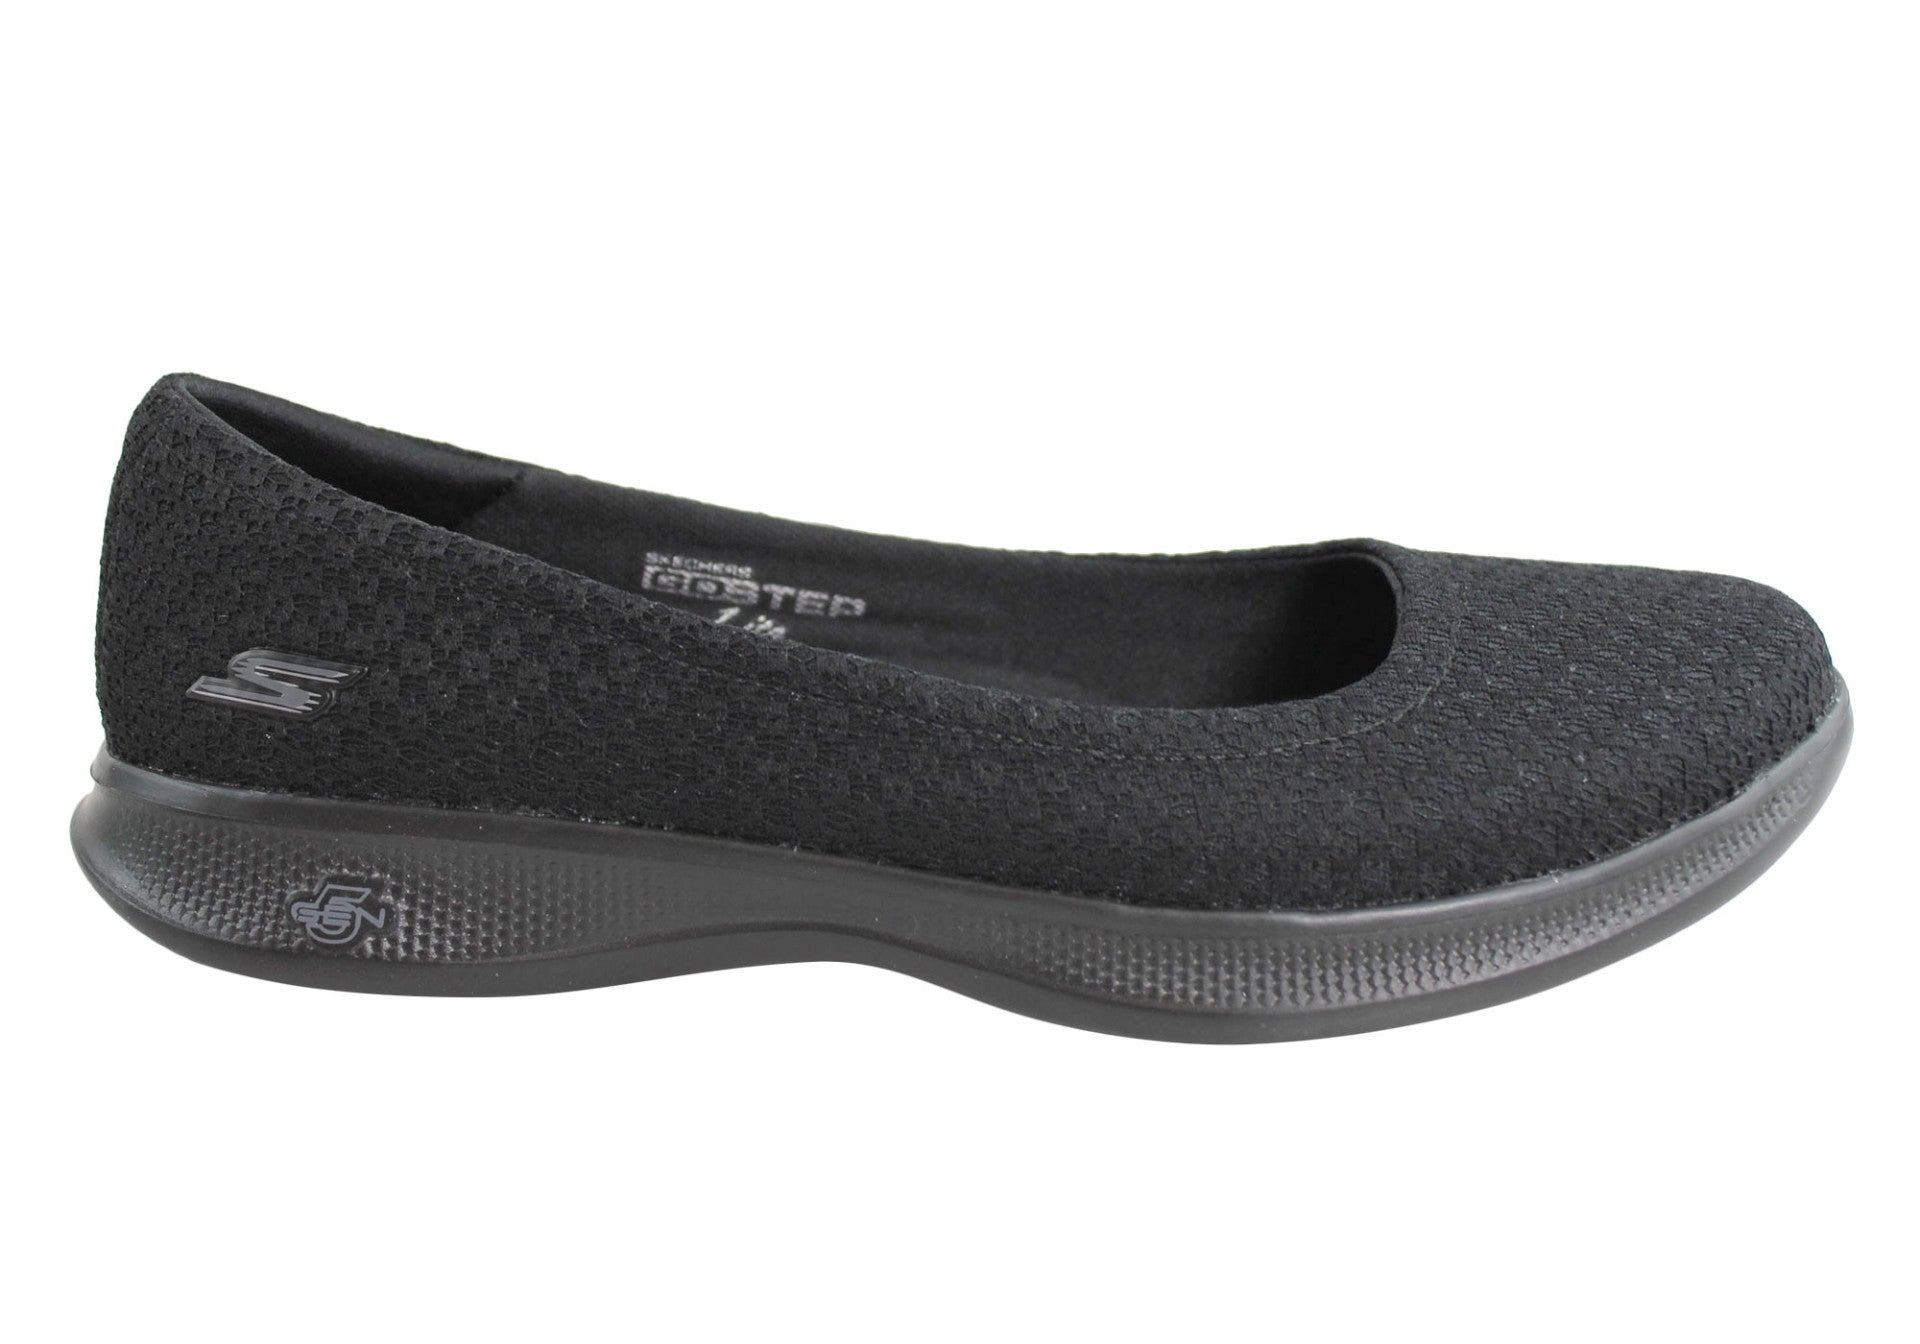 NEW-SKECHERS-GO-STEP-LITE-ENCHANTED-WOMENS-COMFORT-